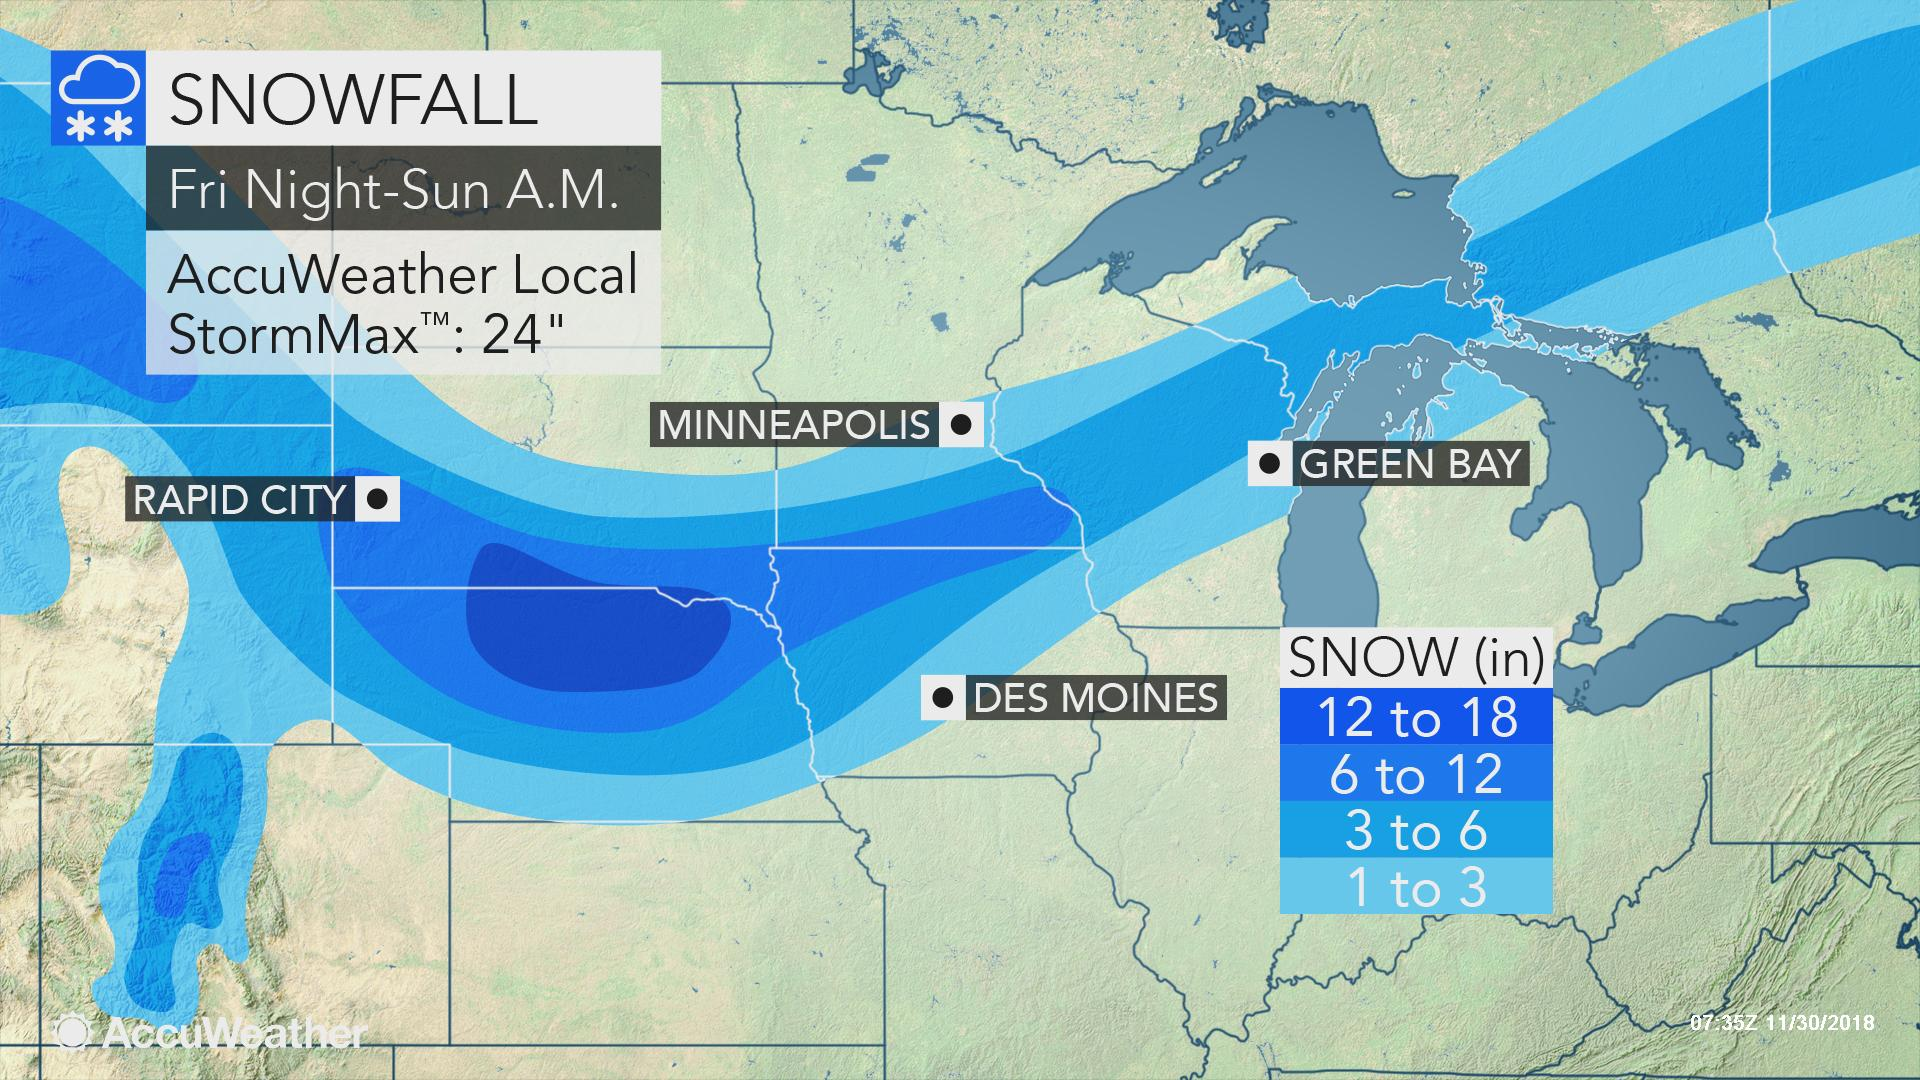 2nd blizzard of season to eye north-central US during 1st ... on west north central states, map of kansas, east coast of the united states, map of philippines, south central united states, map of united kingdom, map of central america, map of illinois, northwestern united states, map of europe, map of mid united states, map of west central united states, west south central states, map of chicago, map of uk, map of western, pacific states, eastern united states, map of colorado, map of eastern, map of far west, map of north central united states, southeastern united states, map of singapore, map of south, map of texas, map of se, united states of america, map of history,